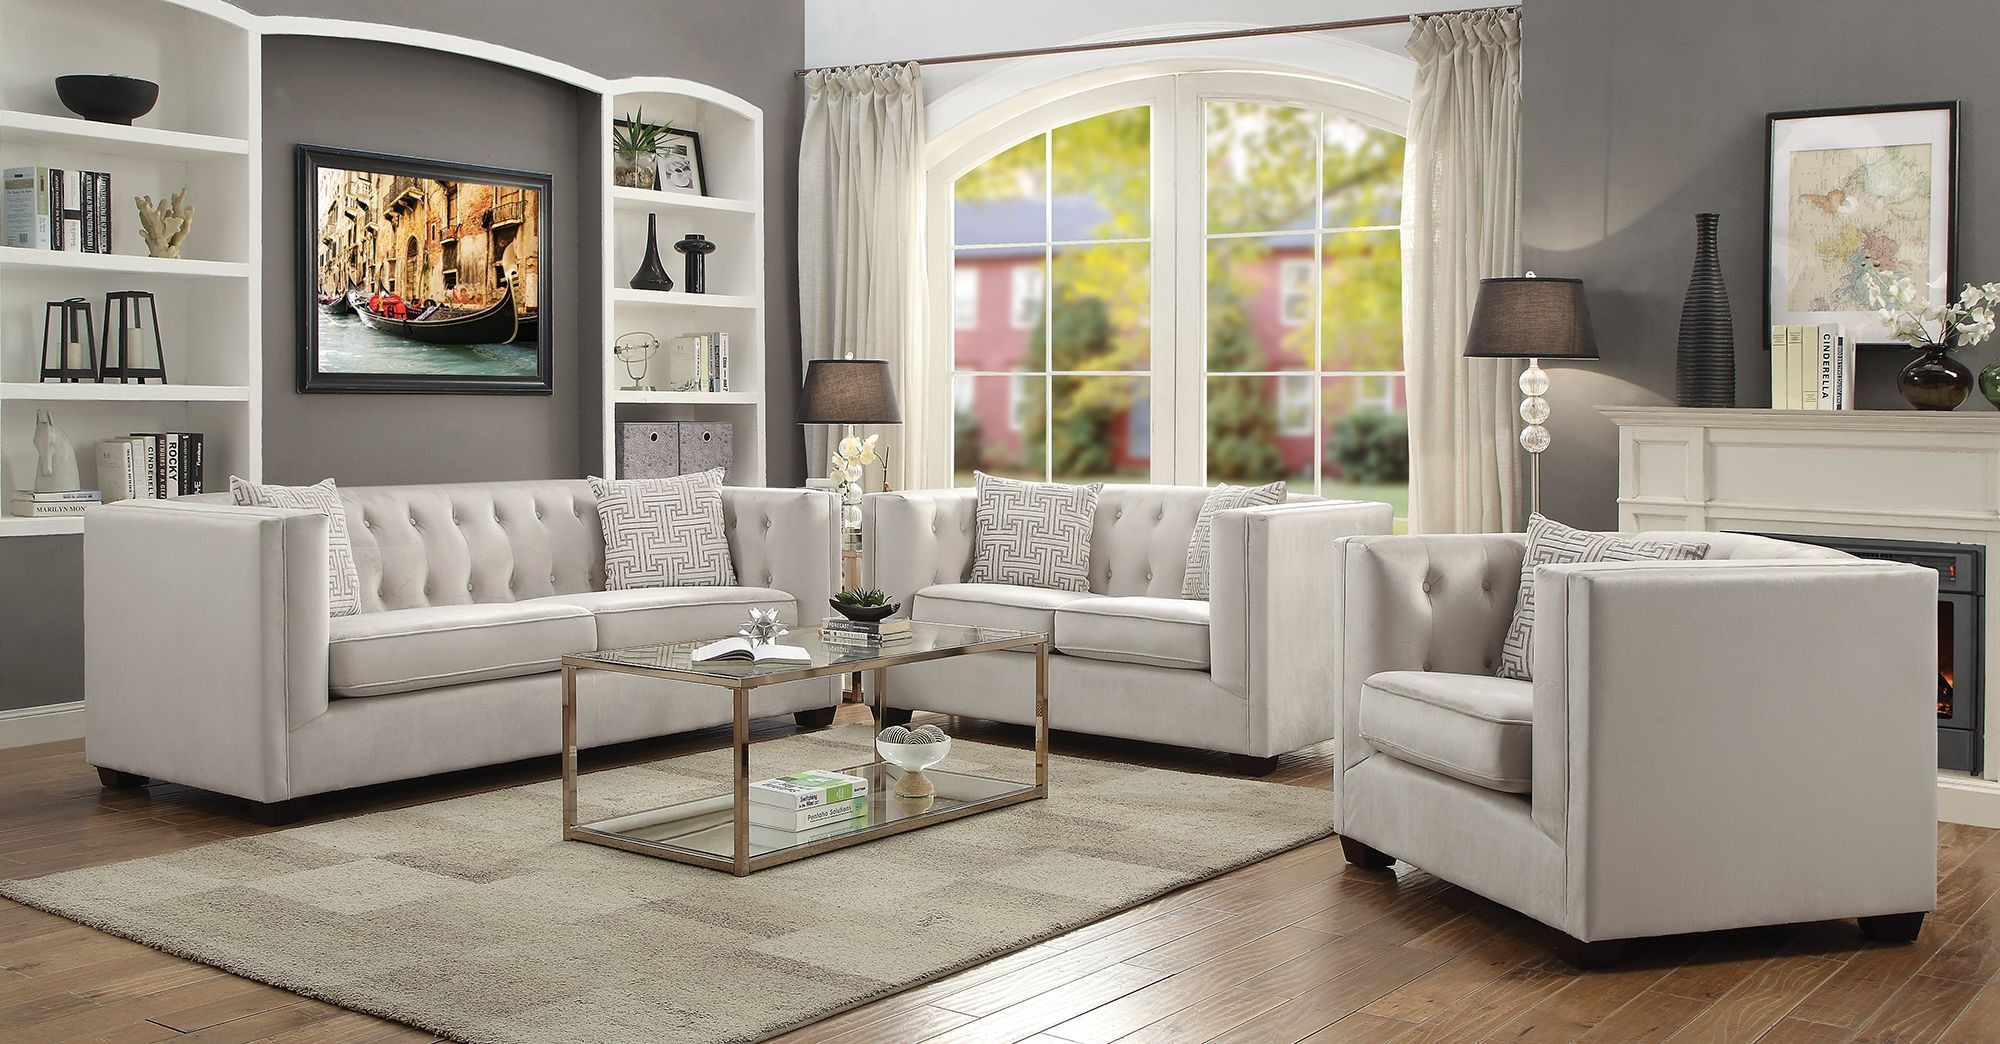 sunderland ivory living room set from coaster coleman furniture. Black Bedroom Furniture Sets. Home Design Ideas